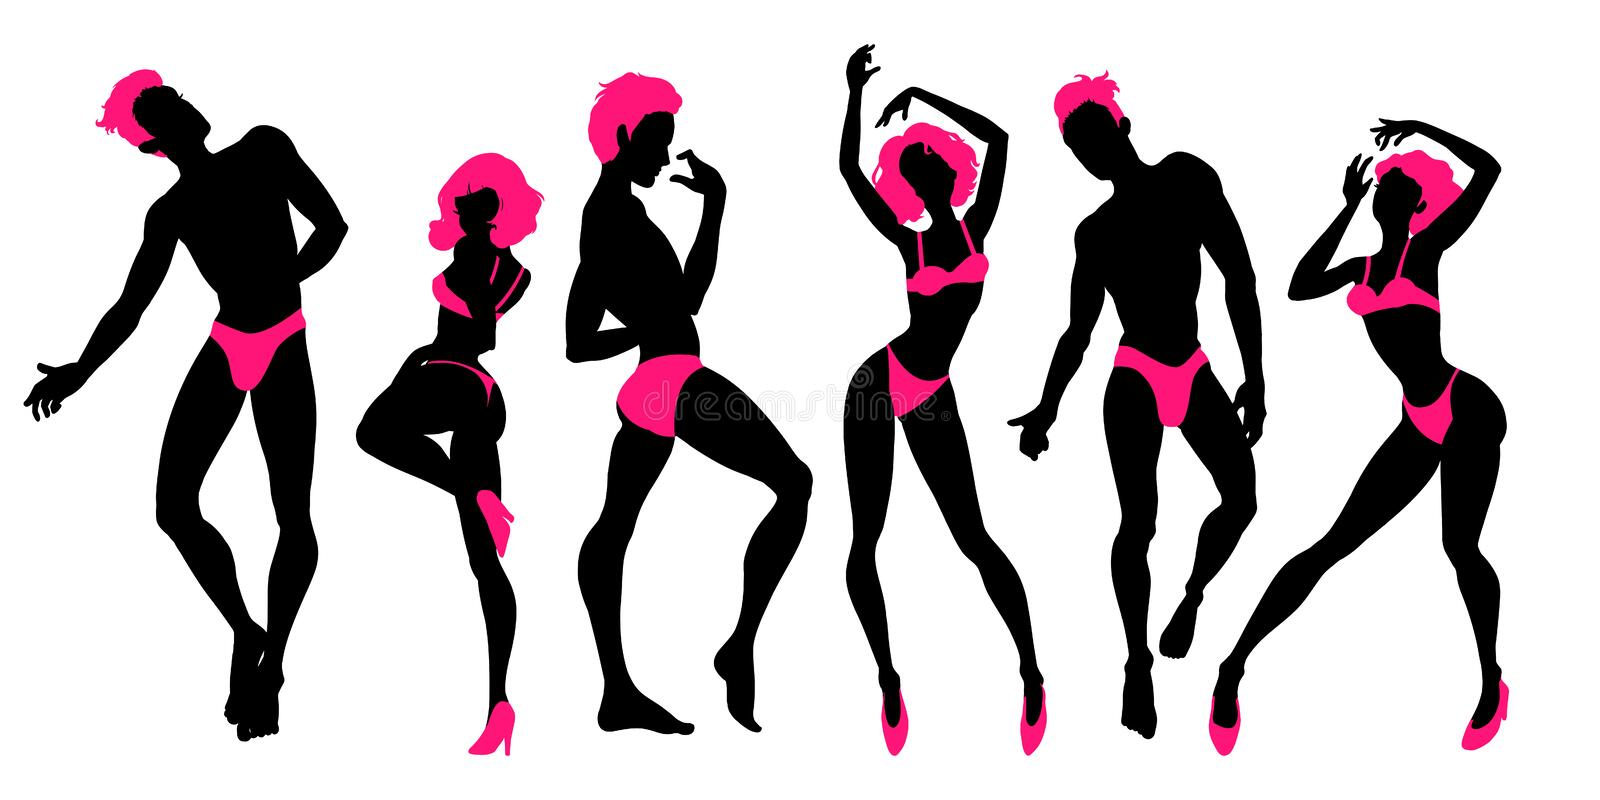 Group of dancing people silhouettes, sexy dancers, men and women, go-go boys and girls, strippers, vector illustration stock illustration